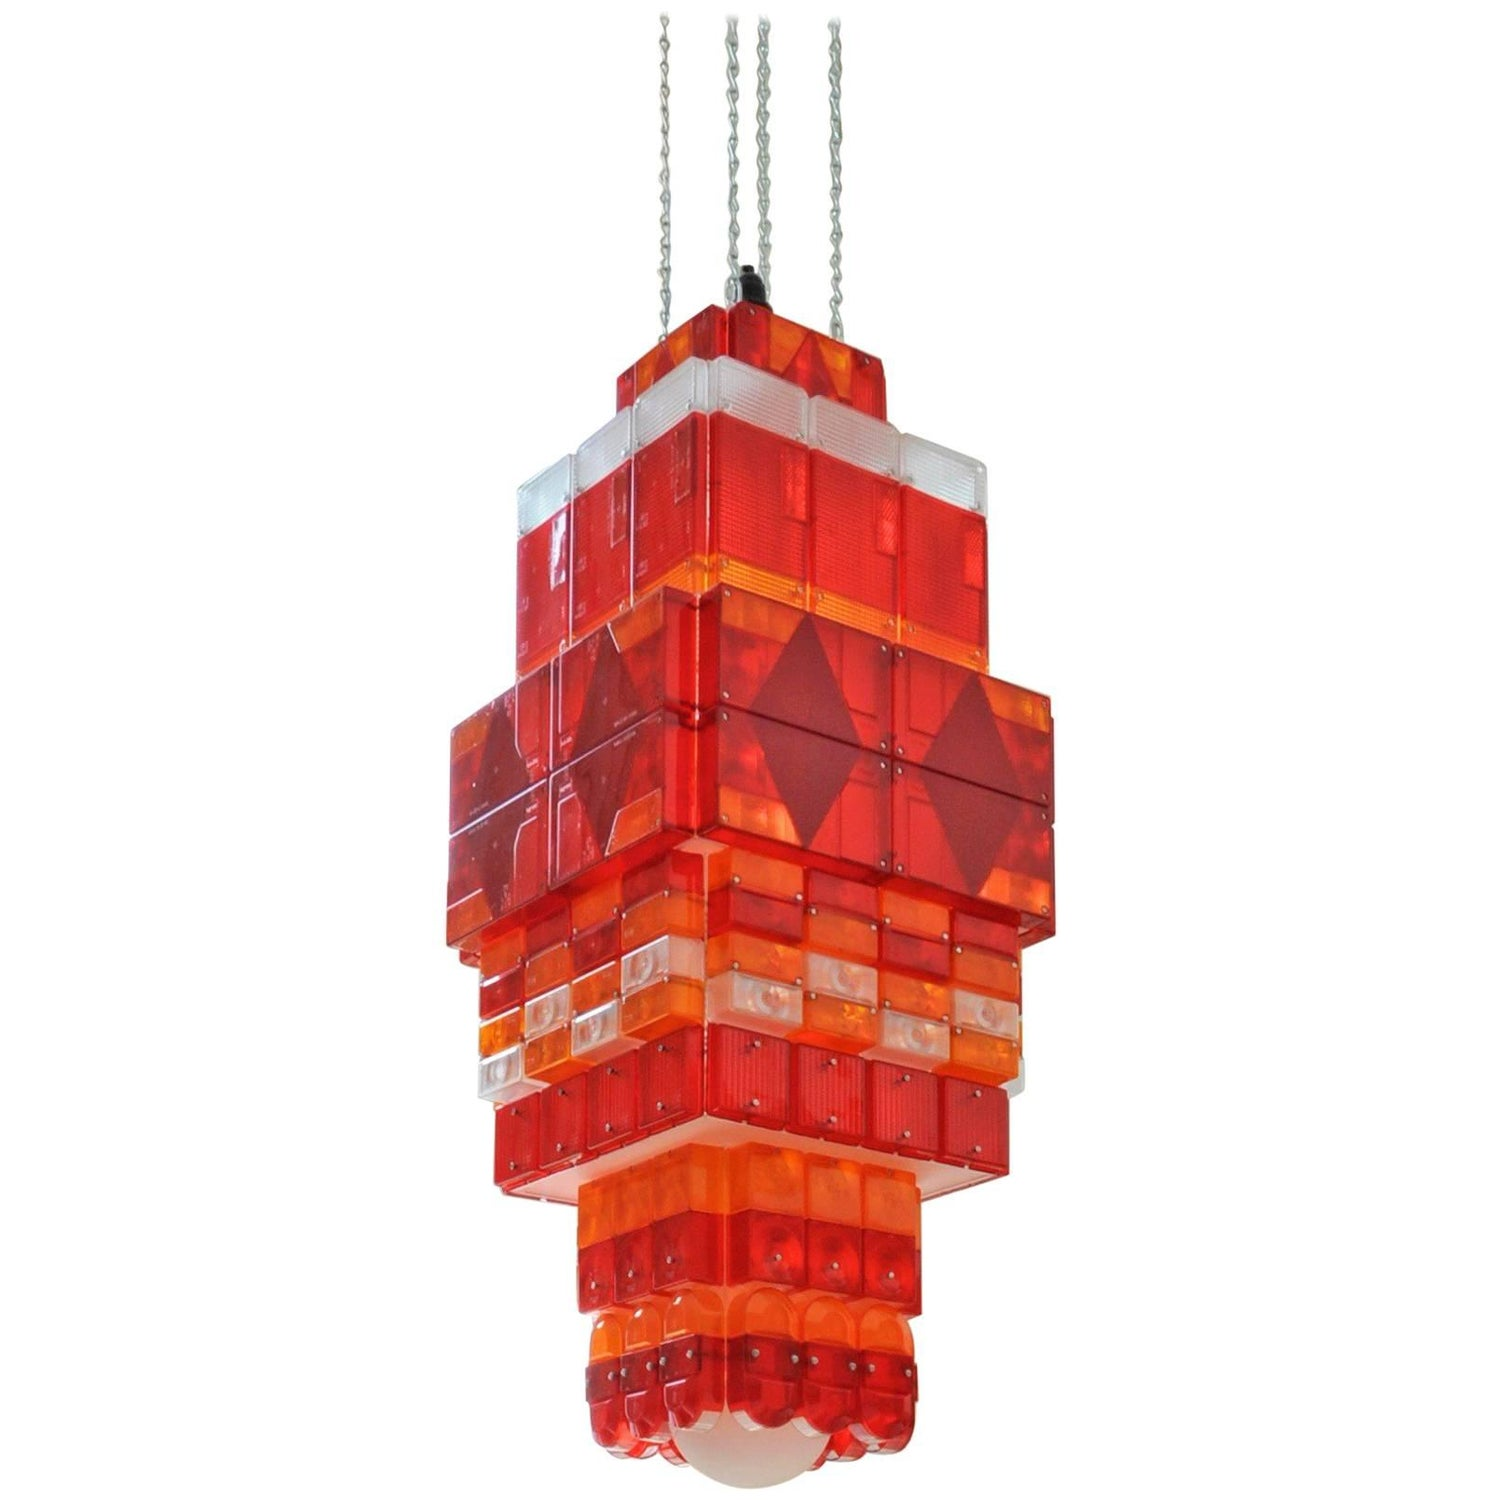 Plexiglass Chandeliers and Pendants 129 For Sale at 1stdibs